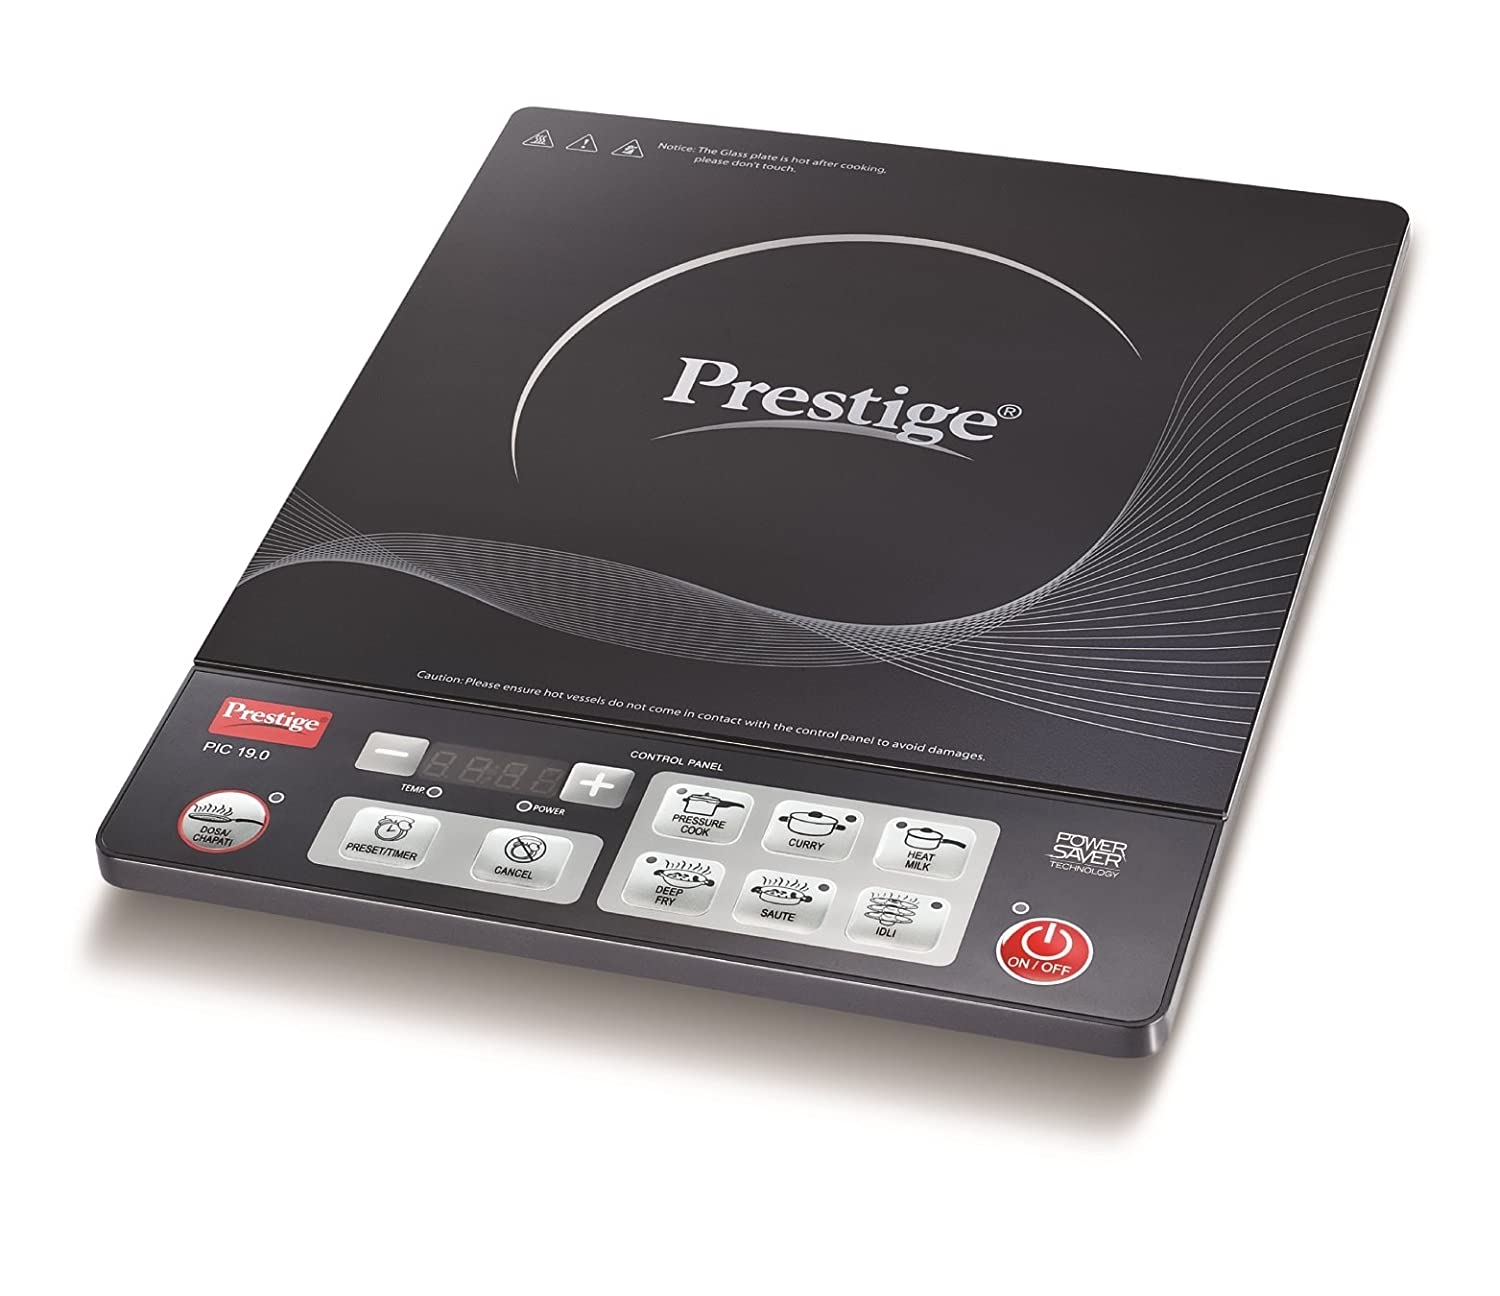 Captivating Buy Prestige PIC 19.0 1600 Watt Induction Cooktop With Push Button Online  At Low Prices In India   Amazon.in